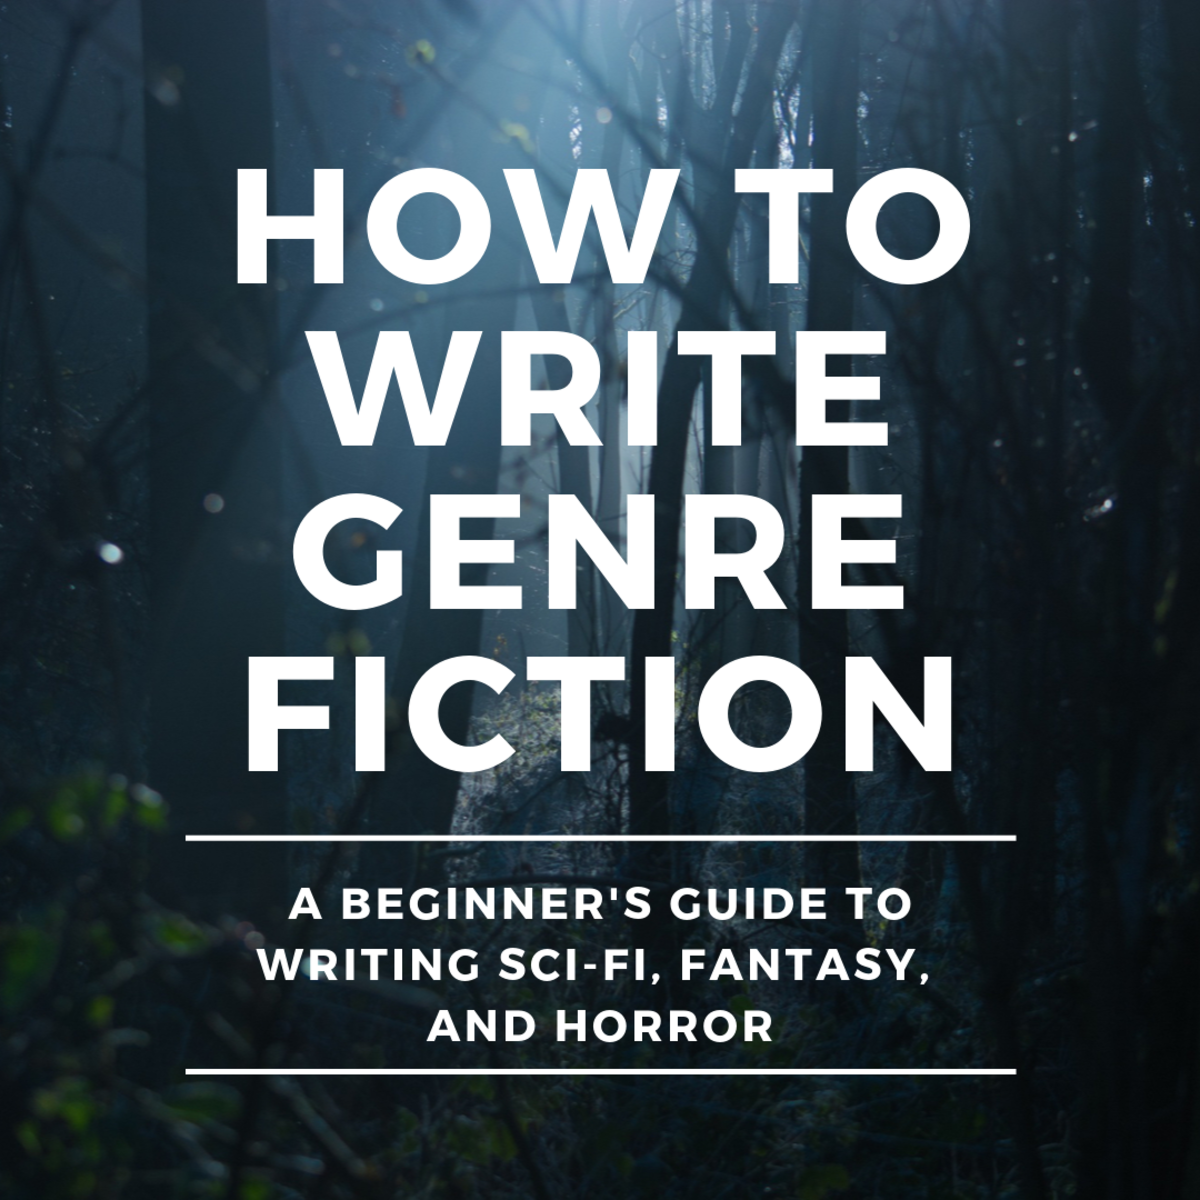 How to Write Genre Fiction for Beginners